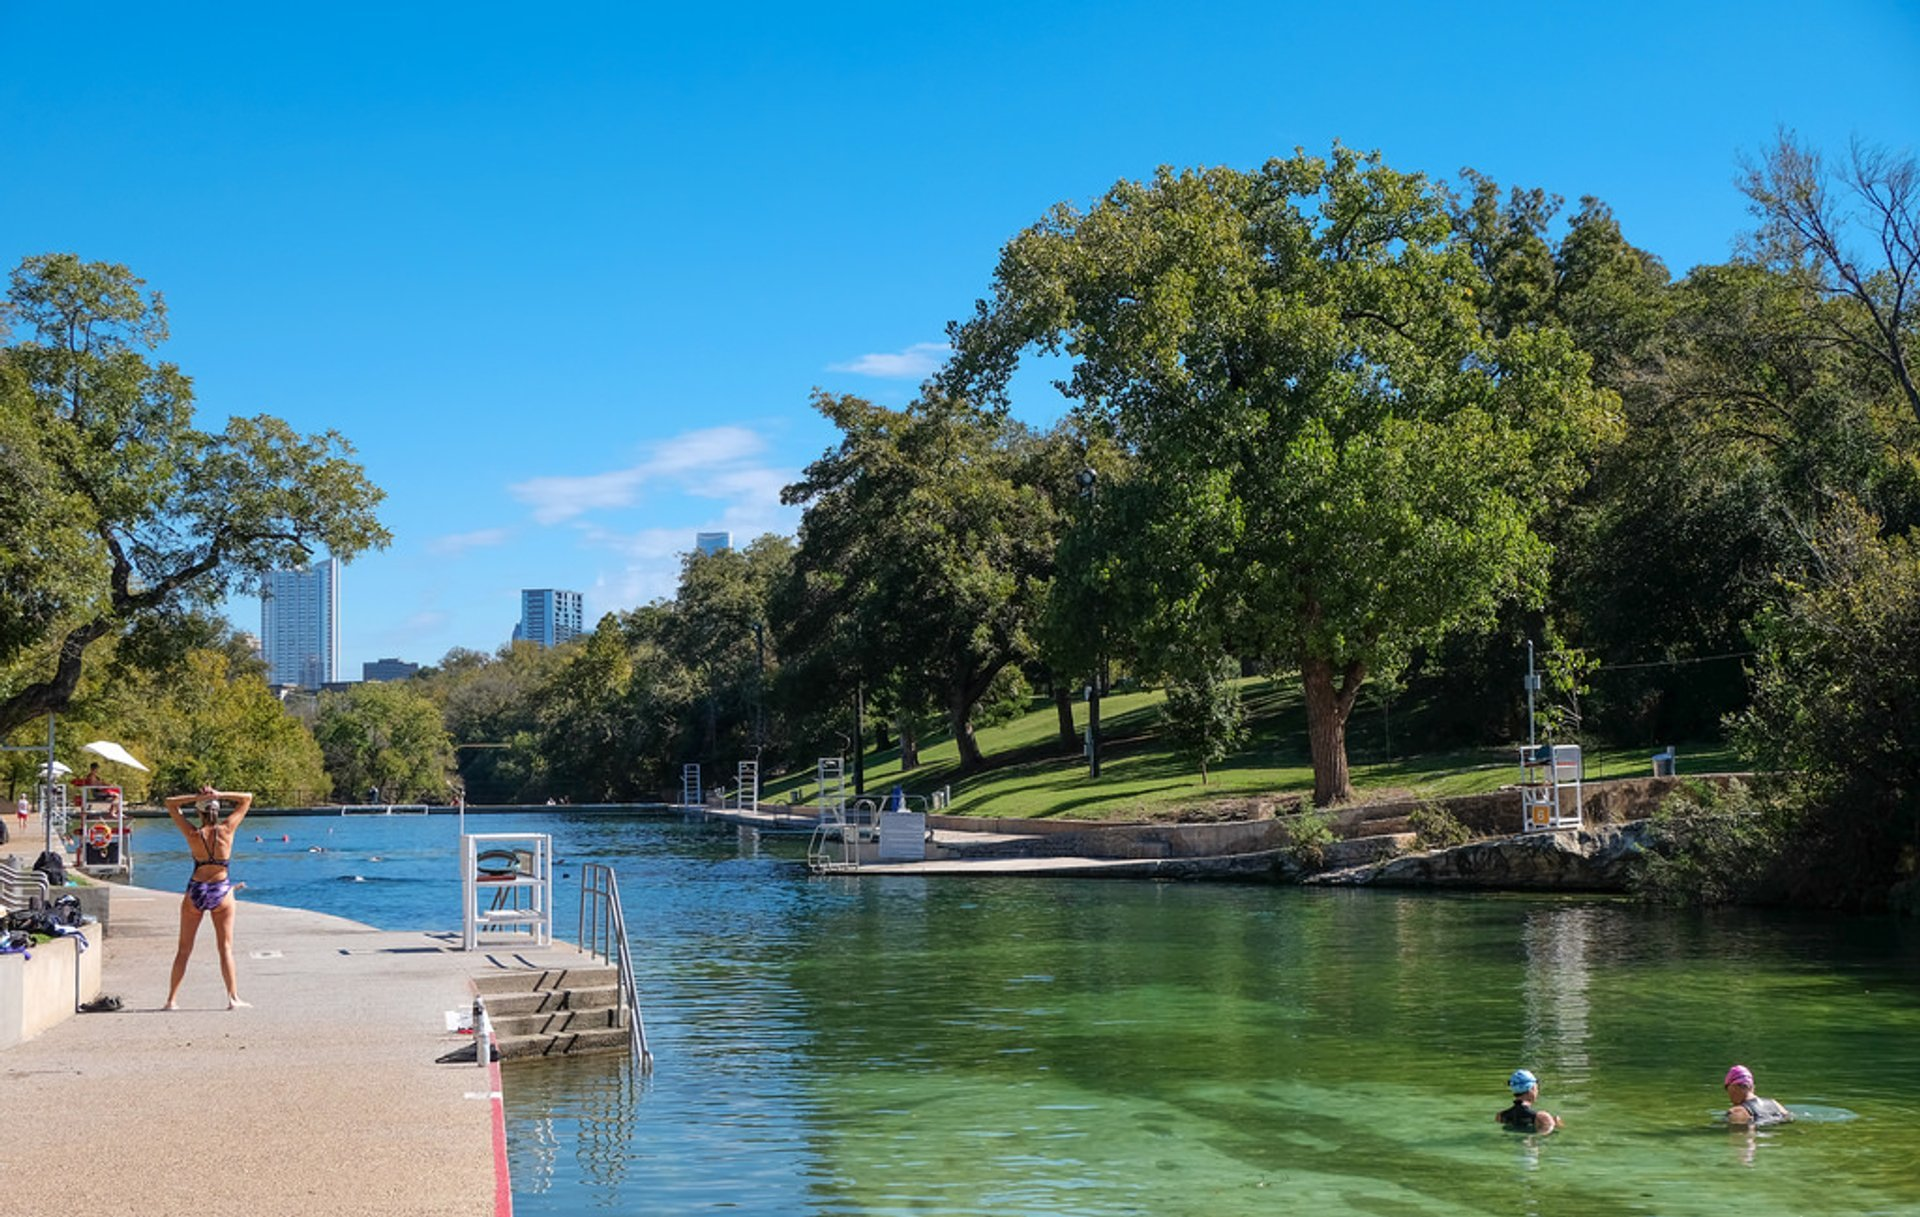 Barton Springs Pool in Texas 2020 - Best Time